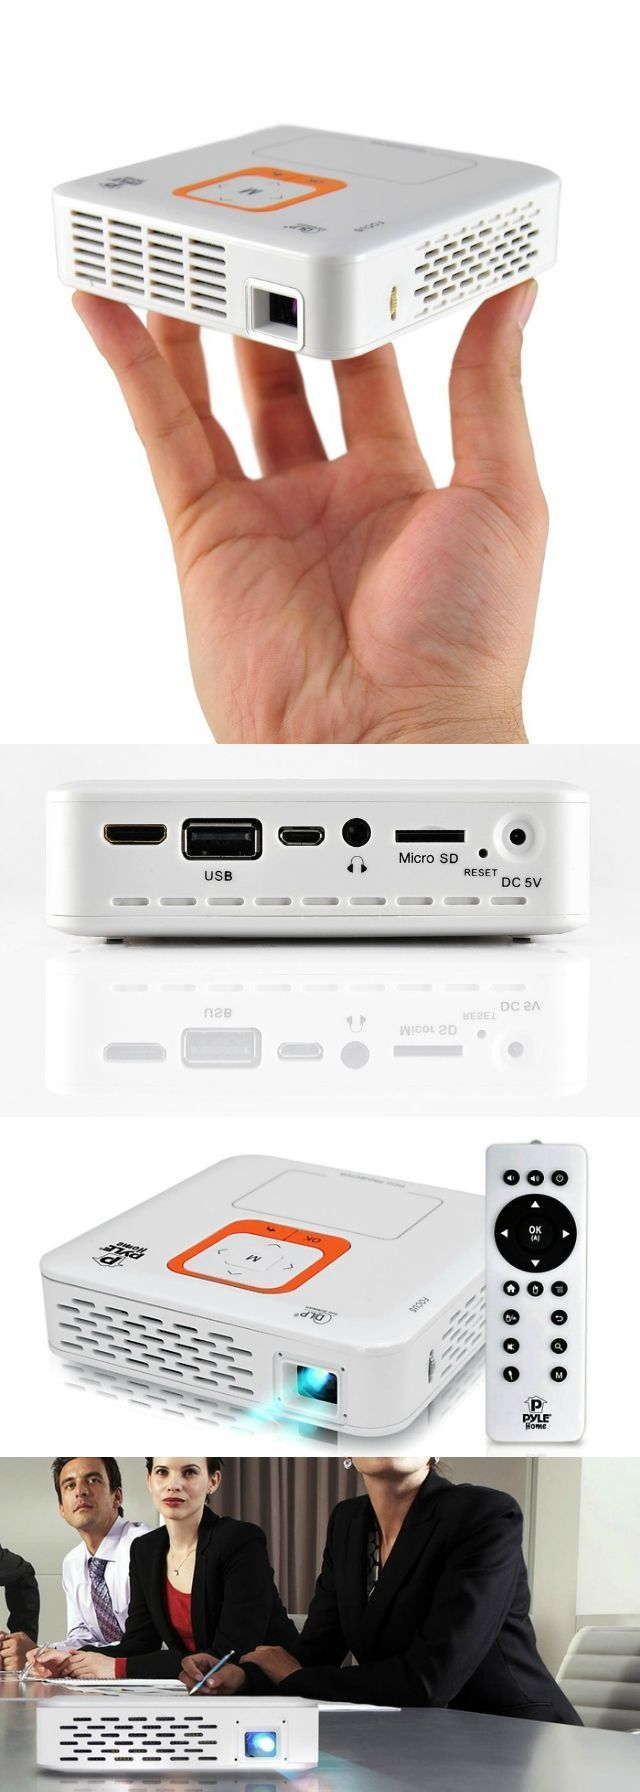 Pyle Smart Pocket Projector – Presentations in your Palm #electronicgadgets